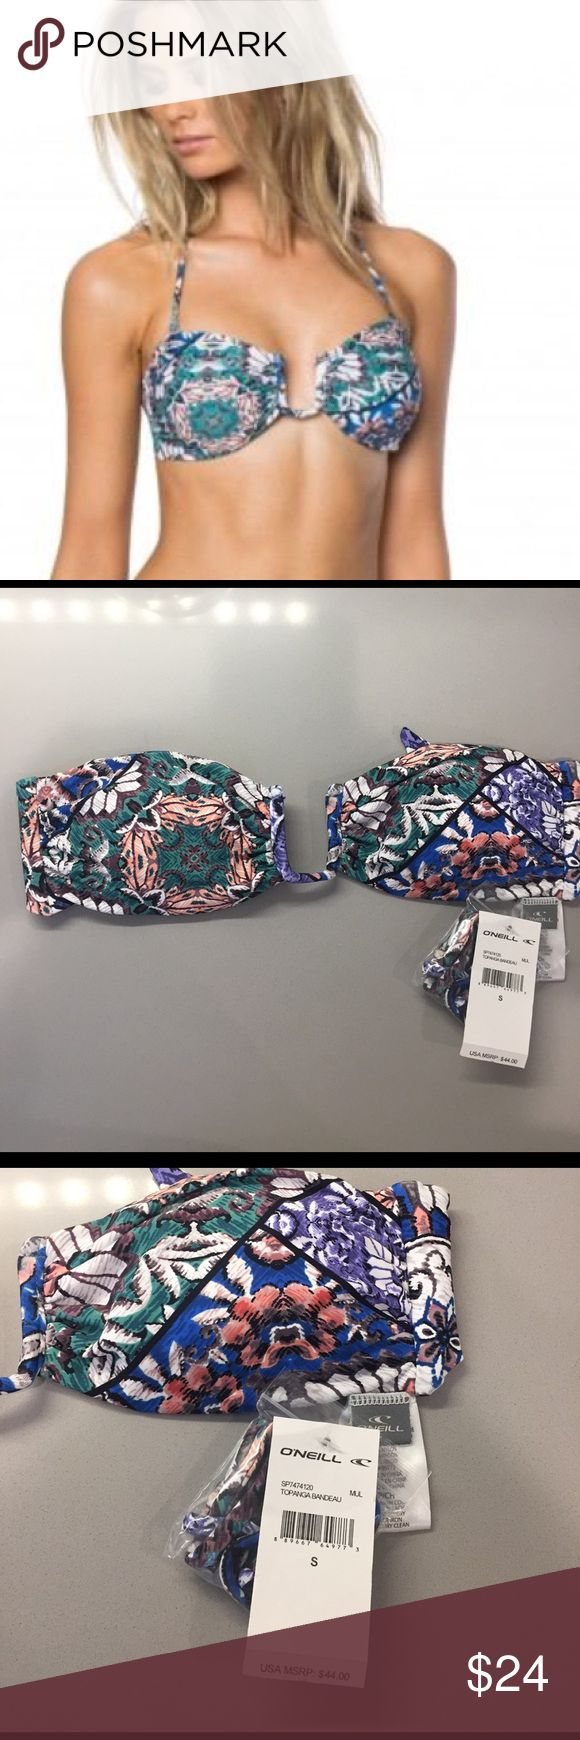 """O'Neill Topanga Bandeau NWT Spring 2017 collection. U wire, sash tie back, removable pads and neck strap.  🚫🚫🚫PayPal or Trades. Reasonable offers will be considered- lowball offers will be ignored! Please use the """"offer"""" button- I don't negotiate in the comments! Bundles are automatically discounted through Posh! I have an O'Neill size chart listed in my closet- please refer to this for fit & size advice. O'Neill Swim Bikinis"""